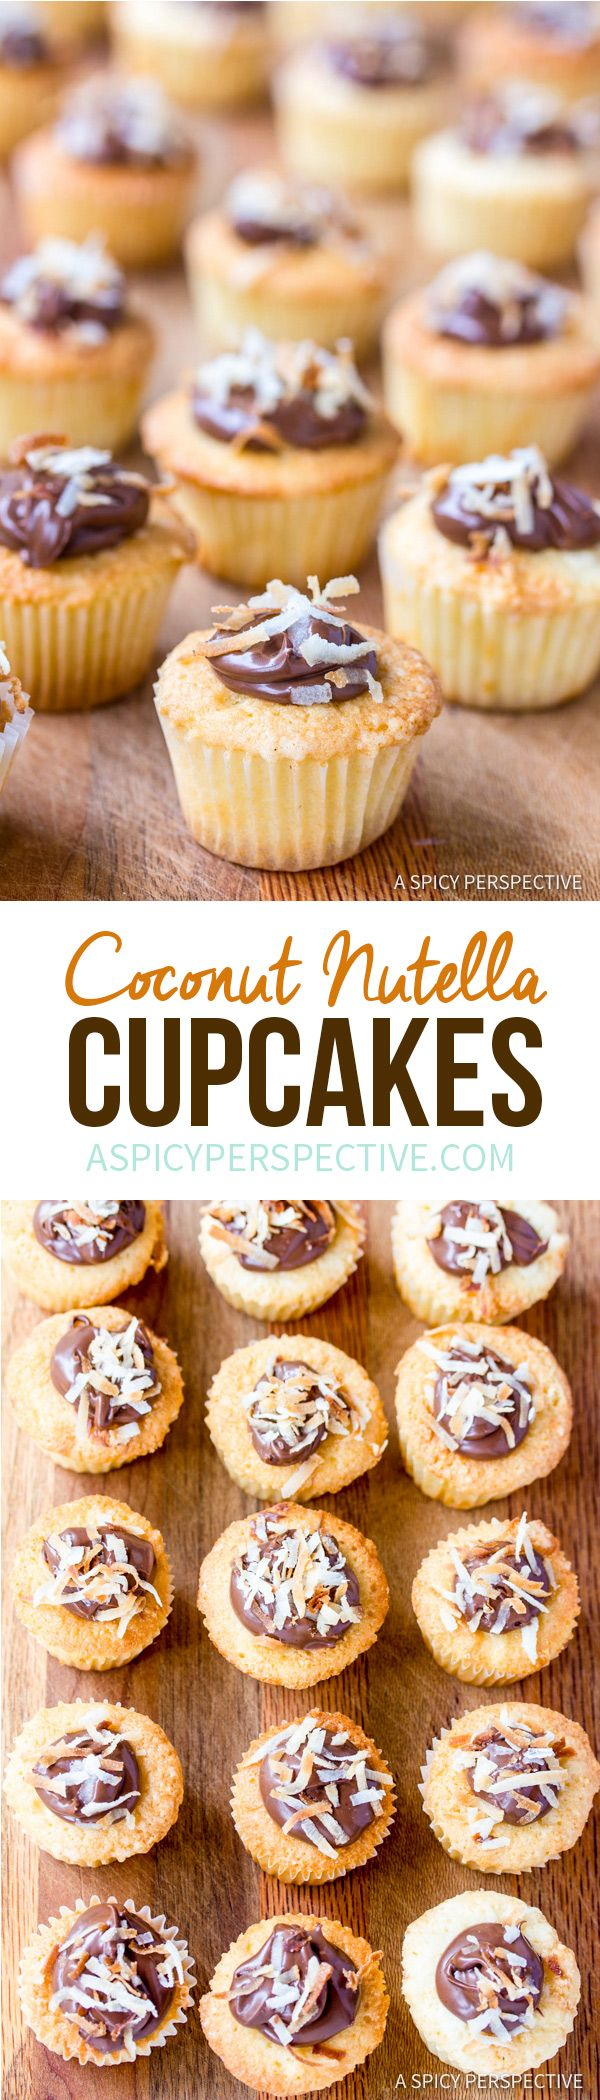 Quick Nutella Icing Recipe 718 Best Cupcake Recipes Love Images On Pinterest Cupcake